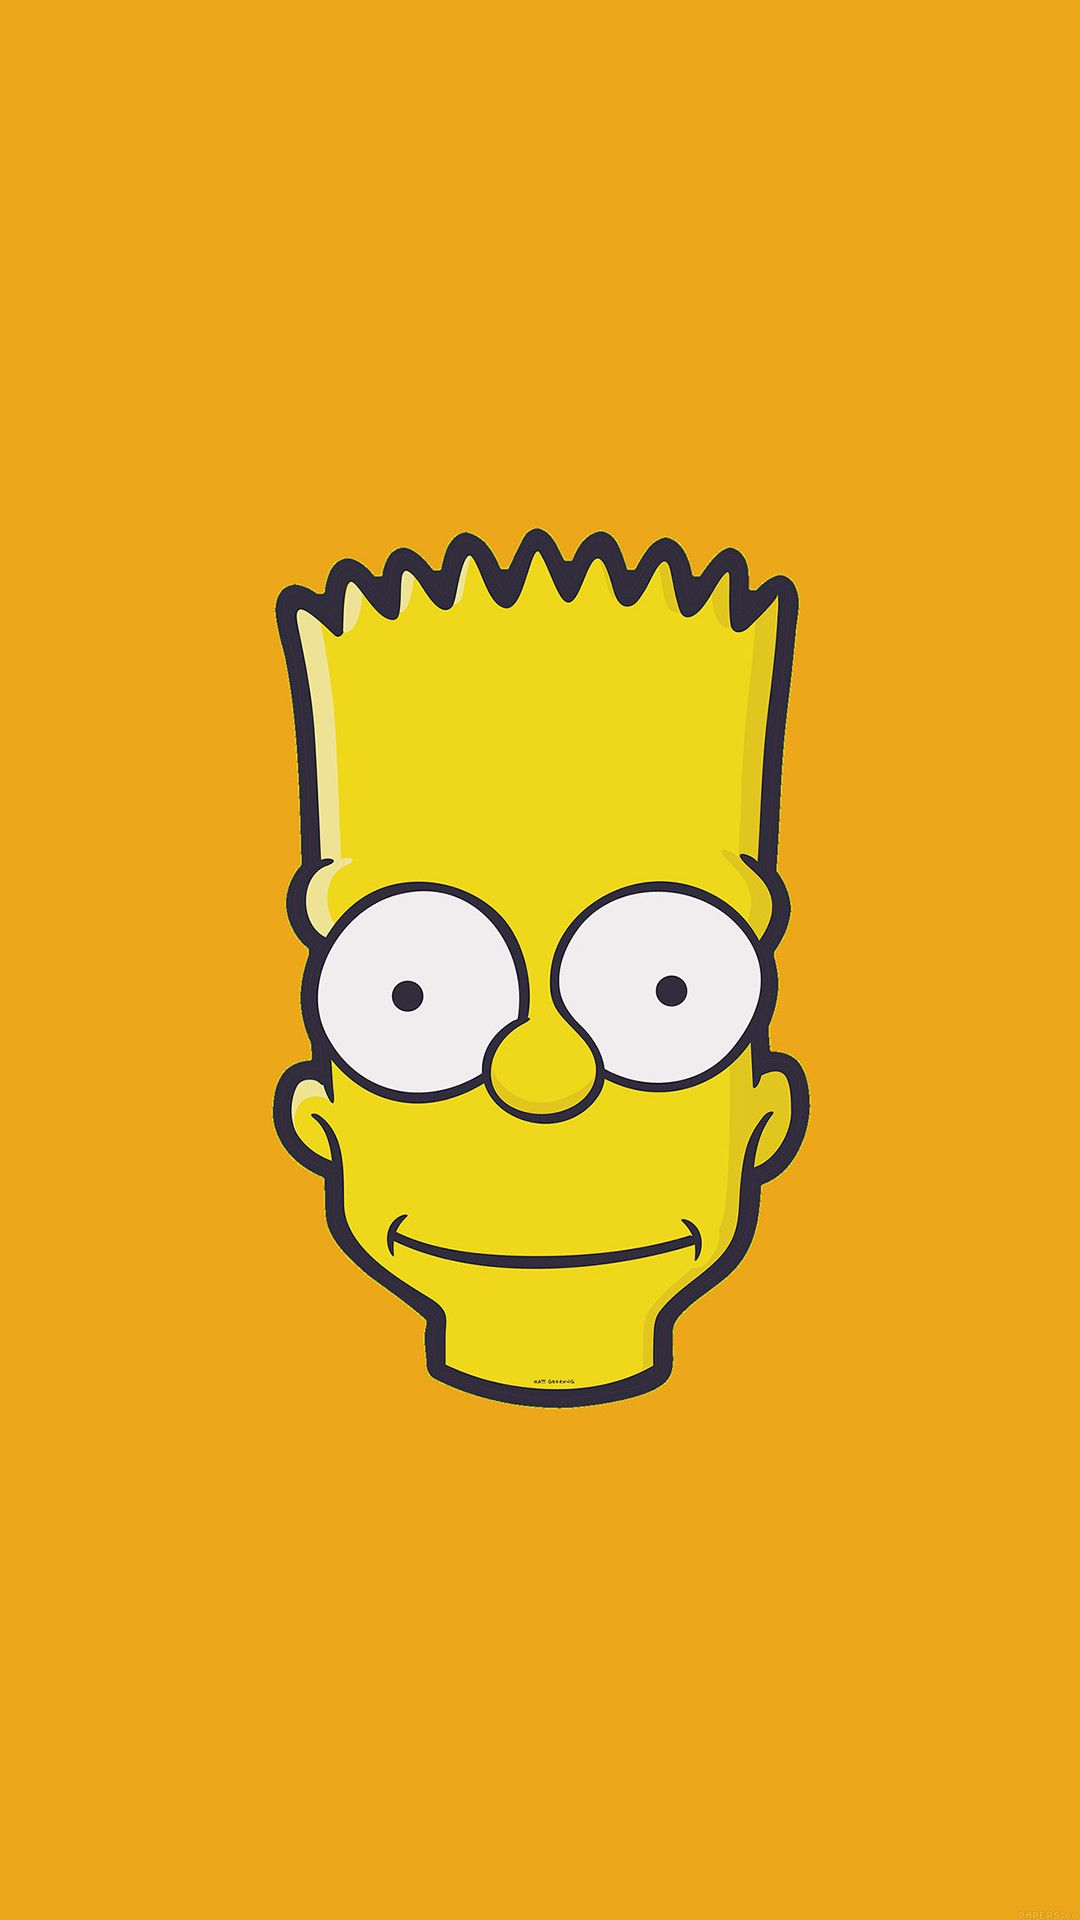 1080x1920 Free download Bart Simpson Wallpapers 68 images [1080x1920 ...